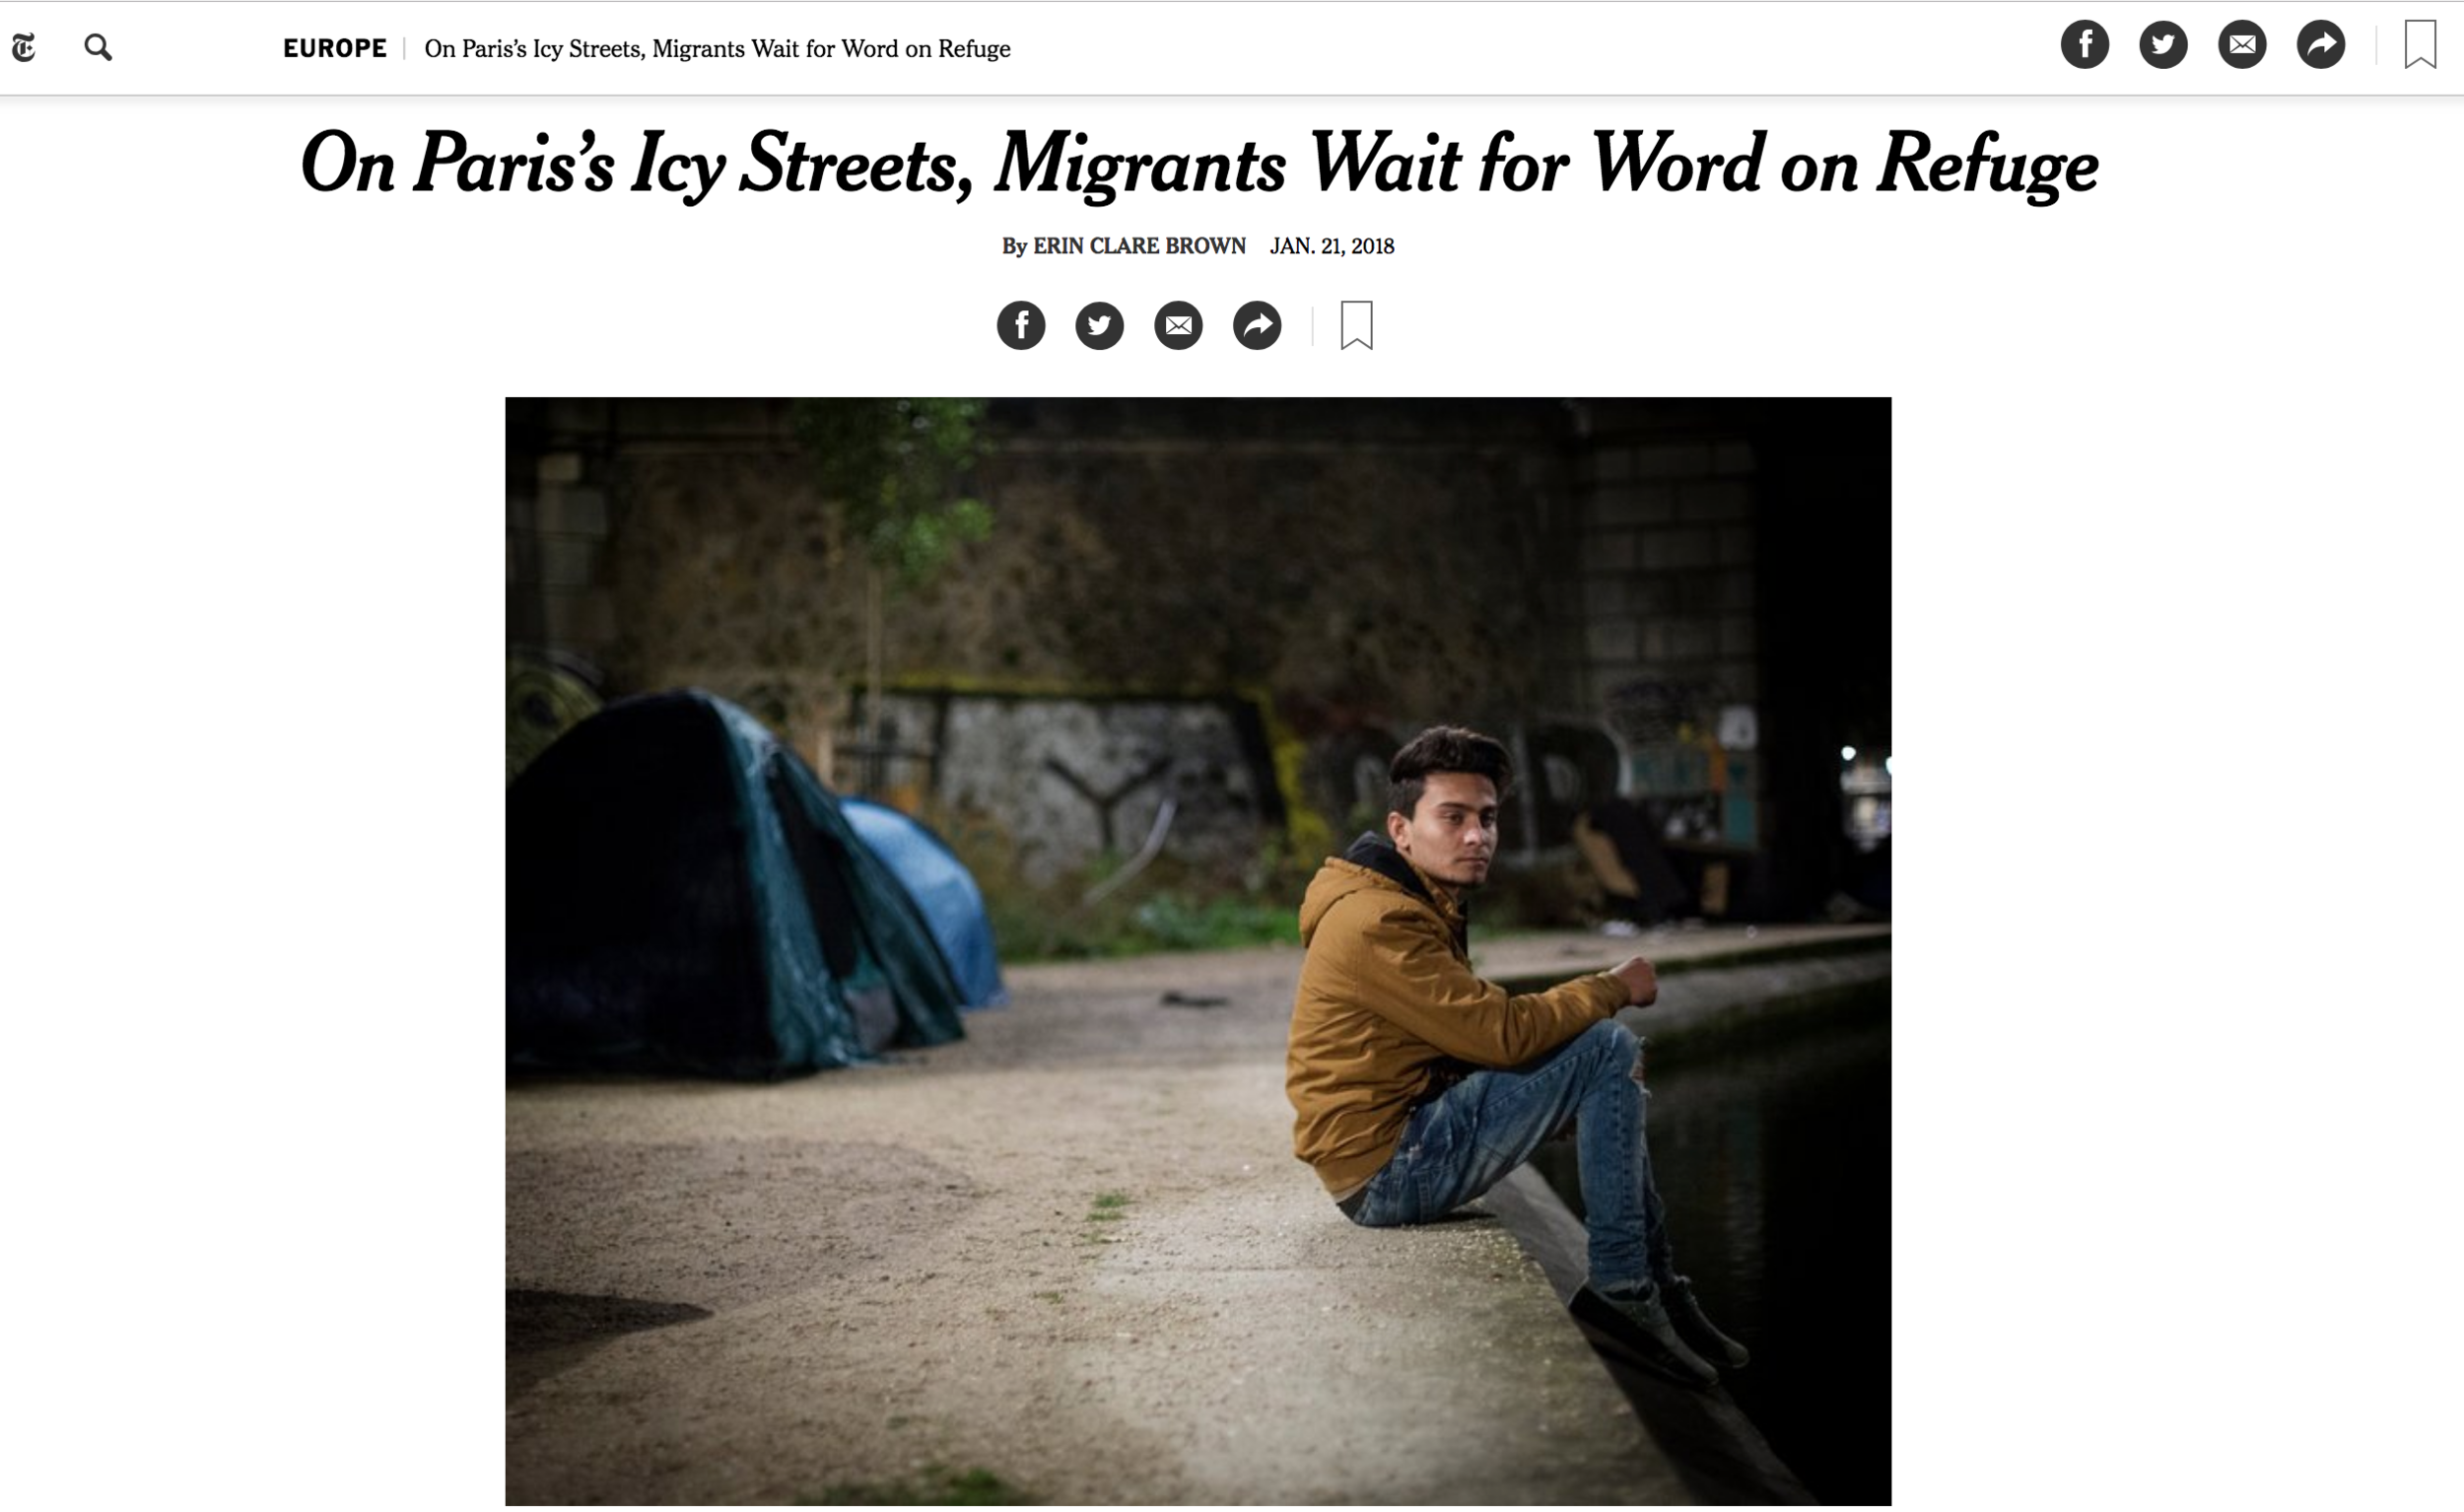 New York Times - Homeless Migrants on the Streets of Paris